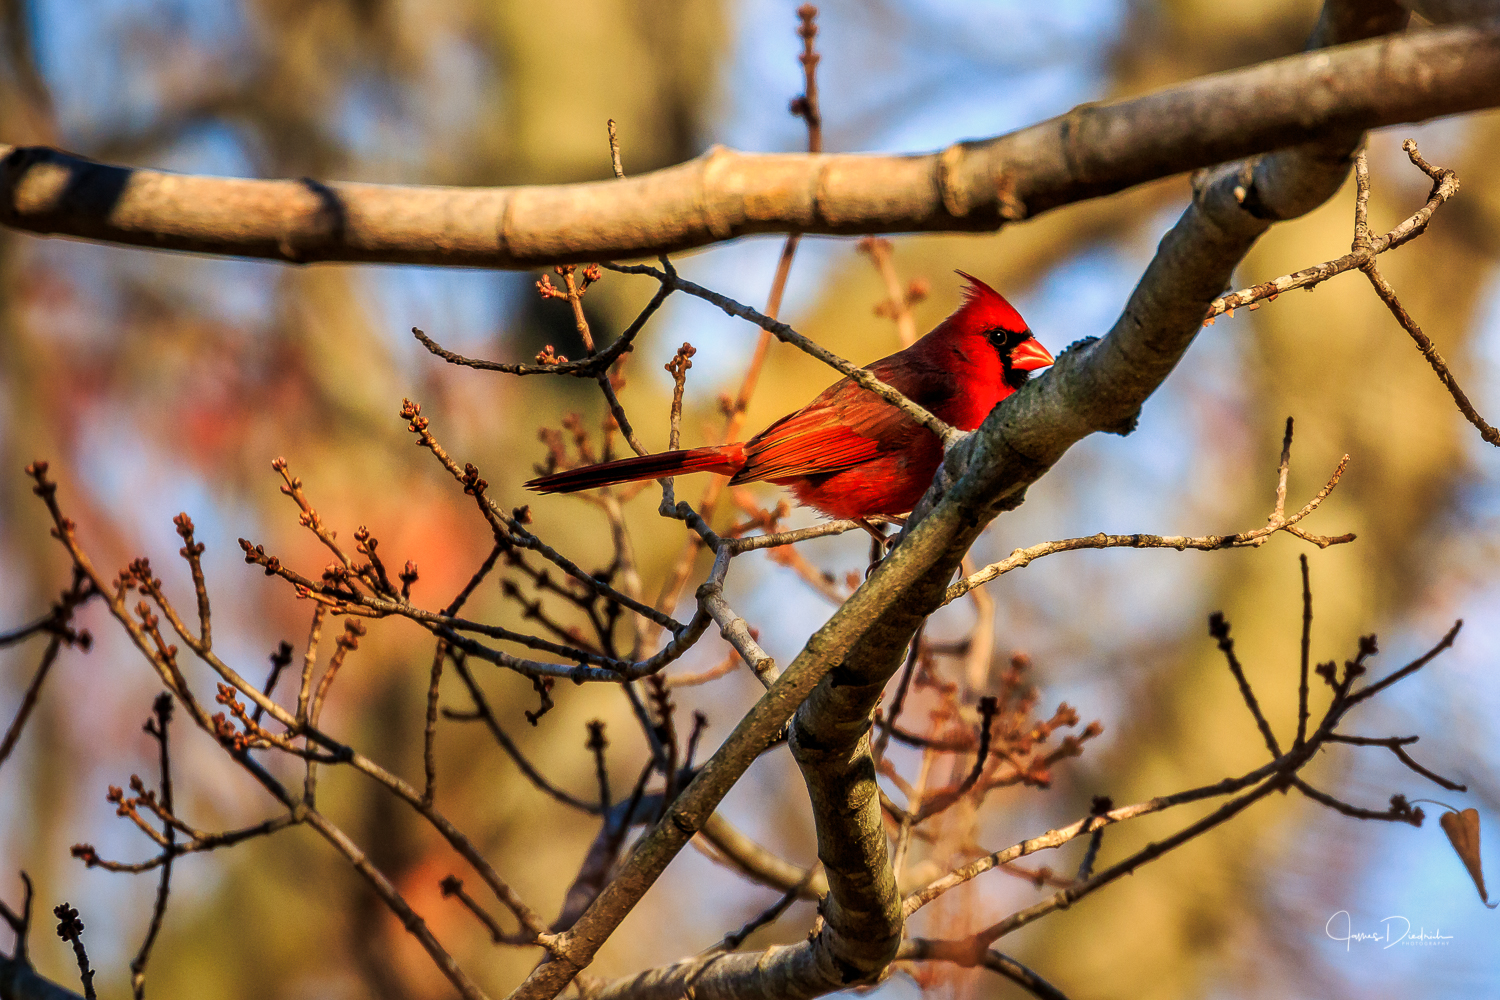 Here is a cardinal observing the feeding station.